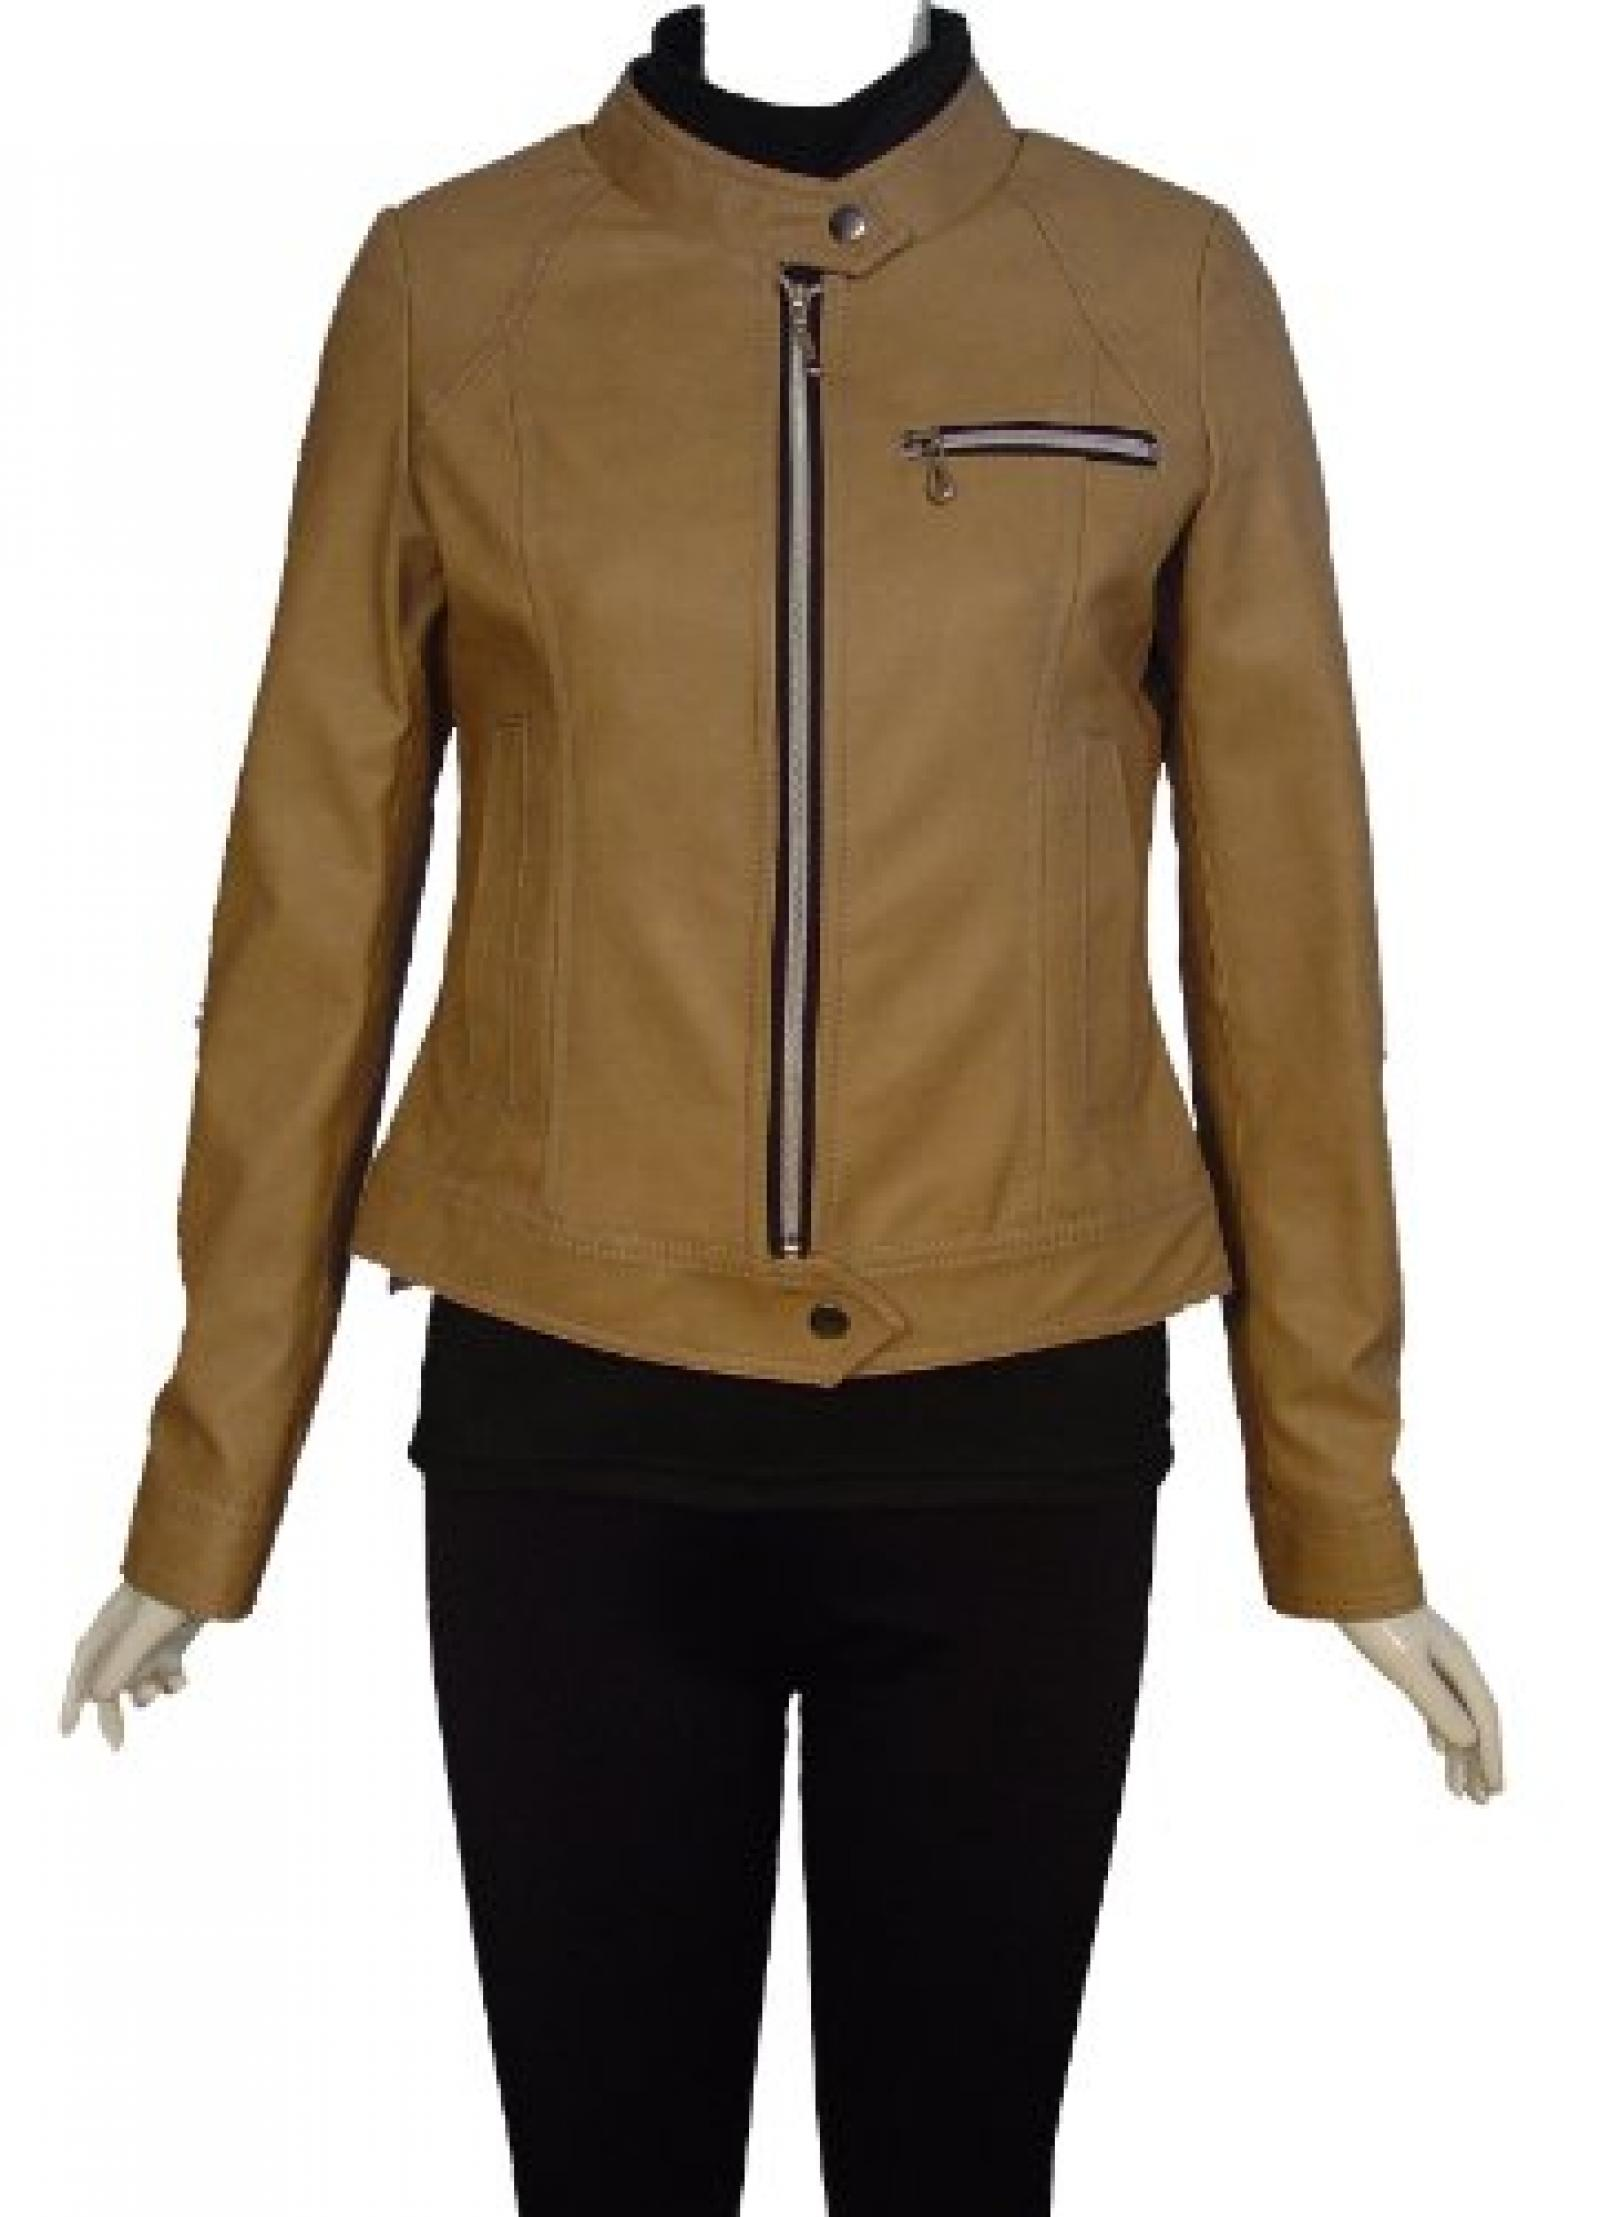 Nettailor Women PETITE SZ 4063 Lamb Leather Motorcycle Jacket